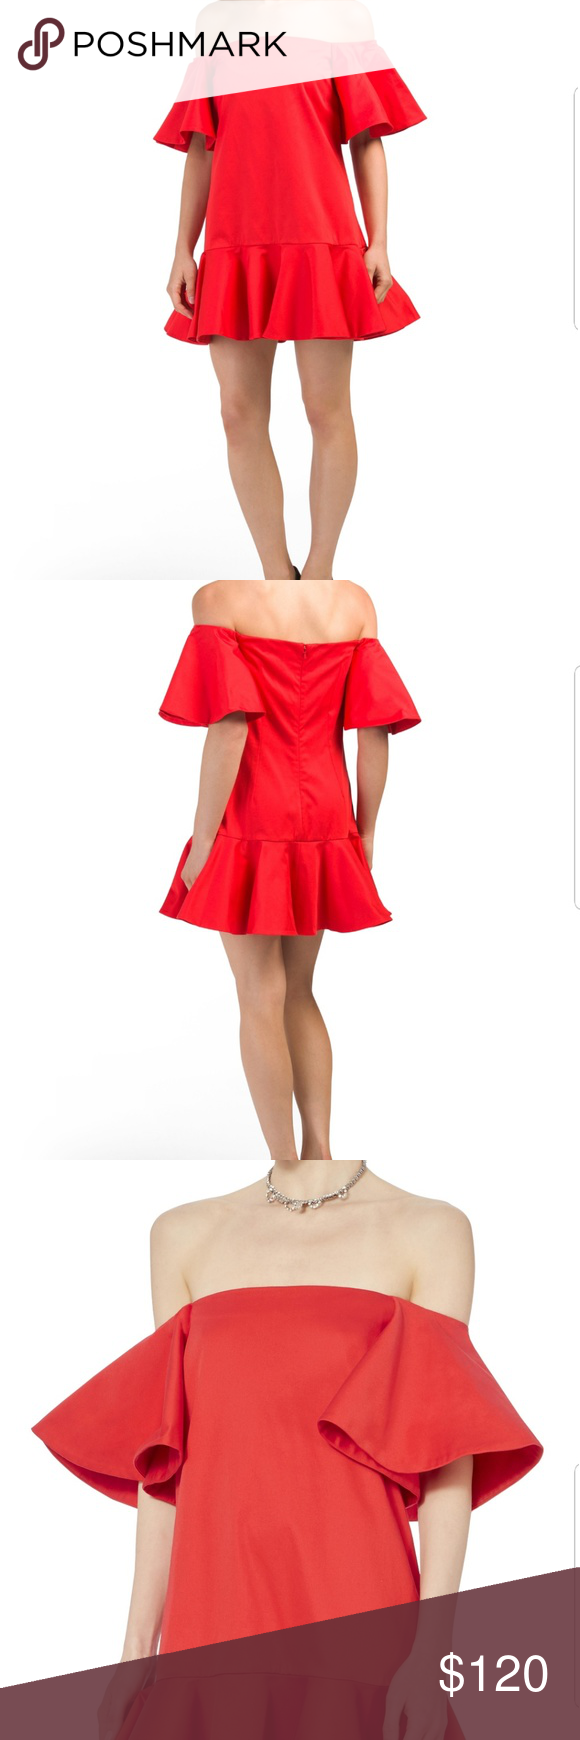 ccd91b4f43a NWT Alexis Aliana Dress in Small Cute dress perfect for the upcoming  holidays! With a